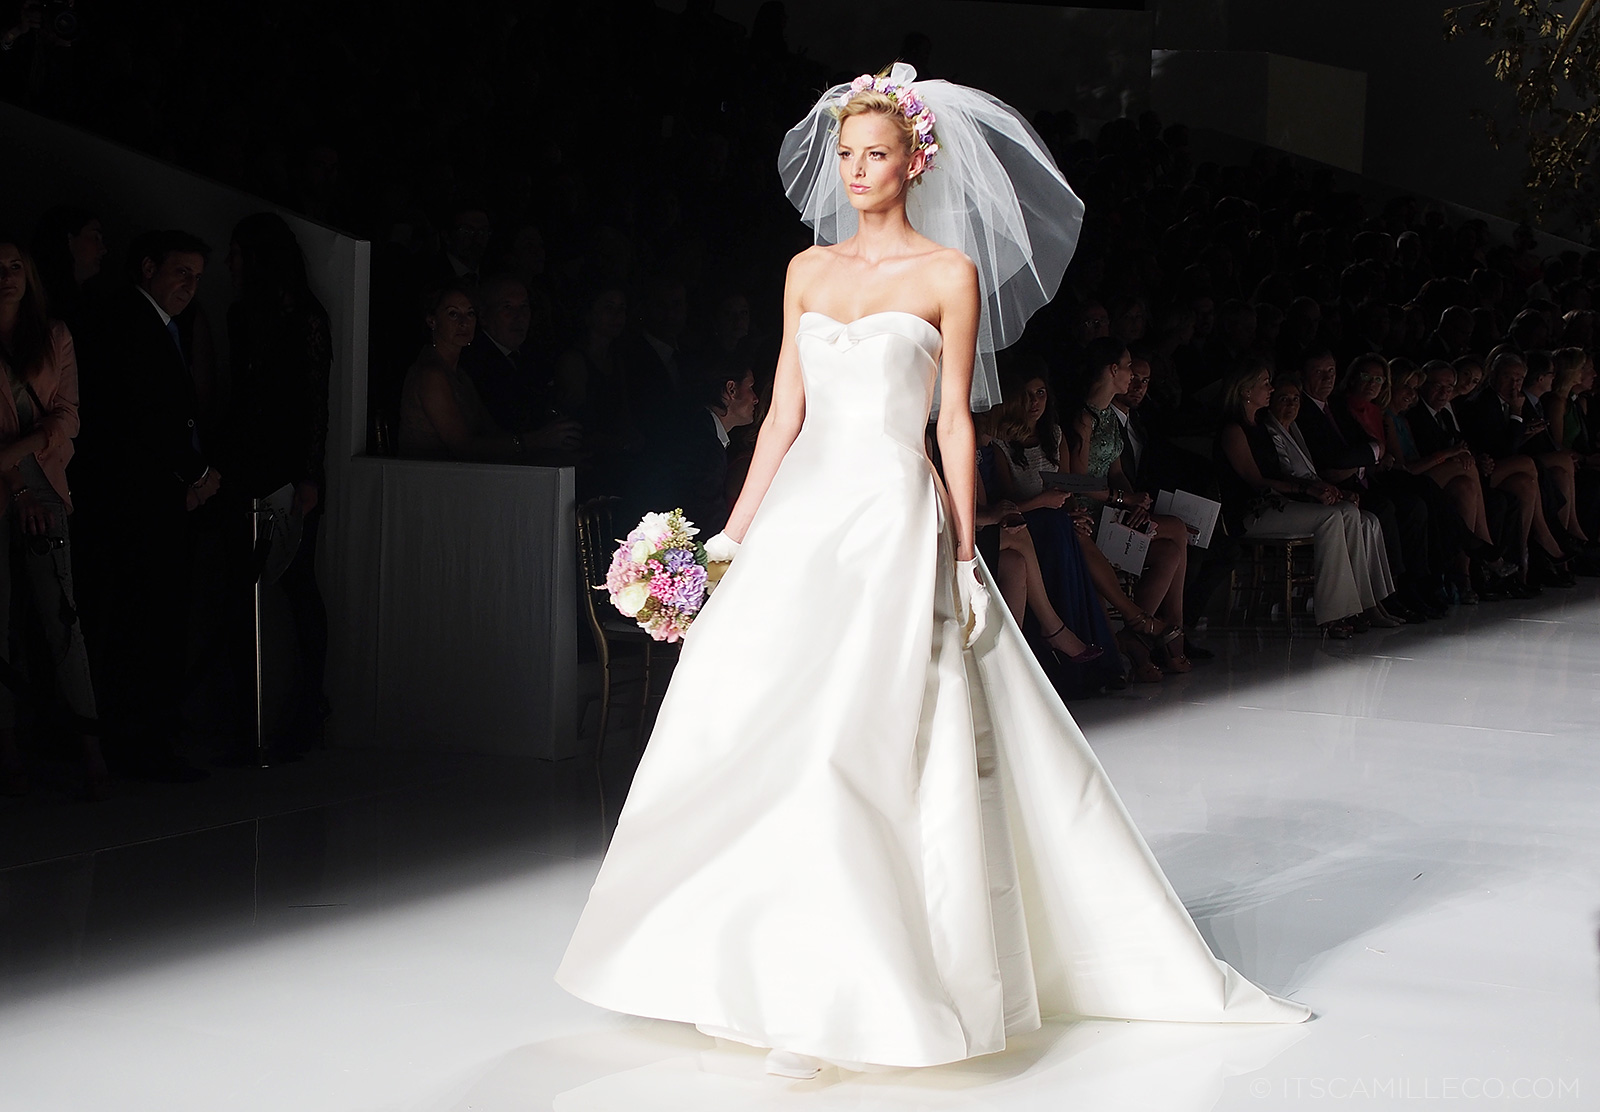 Simplest Wedding Dress 79 Lovely itscamilleco